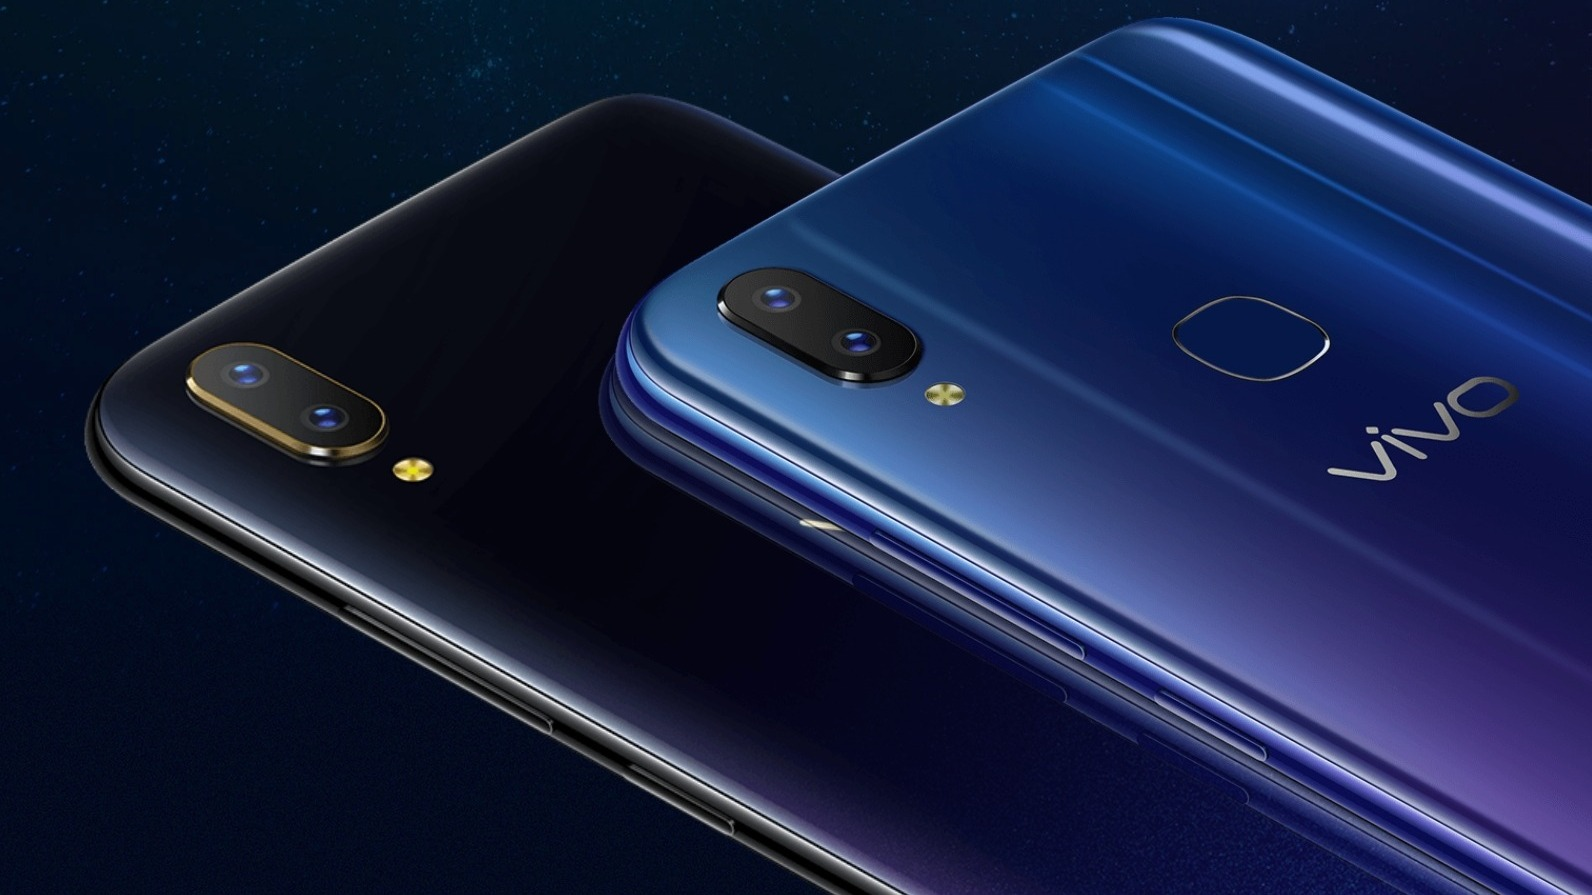 Vivo V11, l'alter ego di OnePlus 6T on 128 GB di memoria in offerta a 399 euro